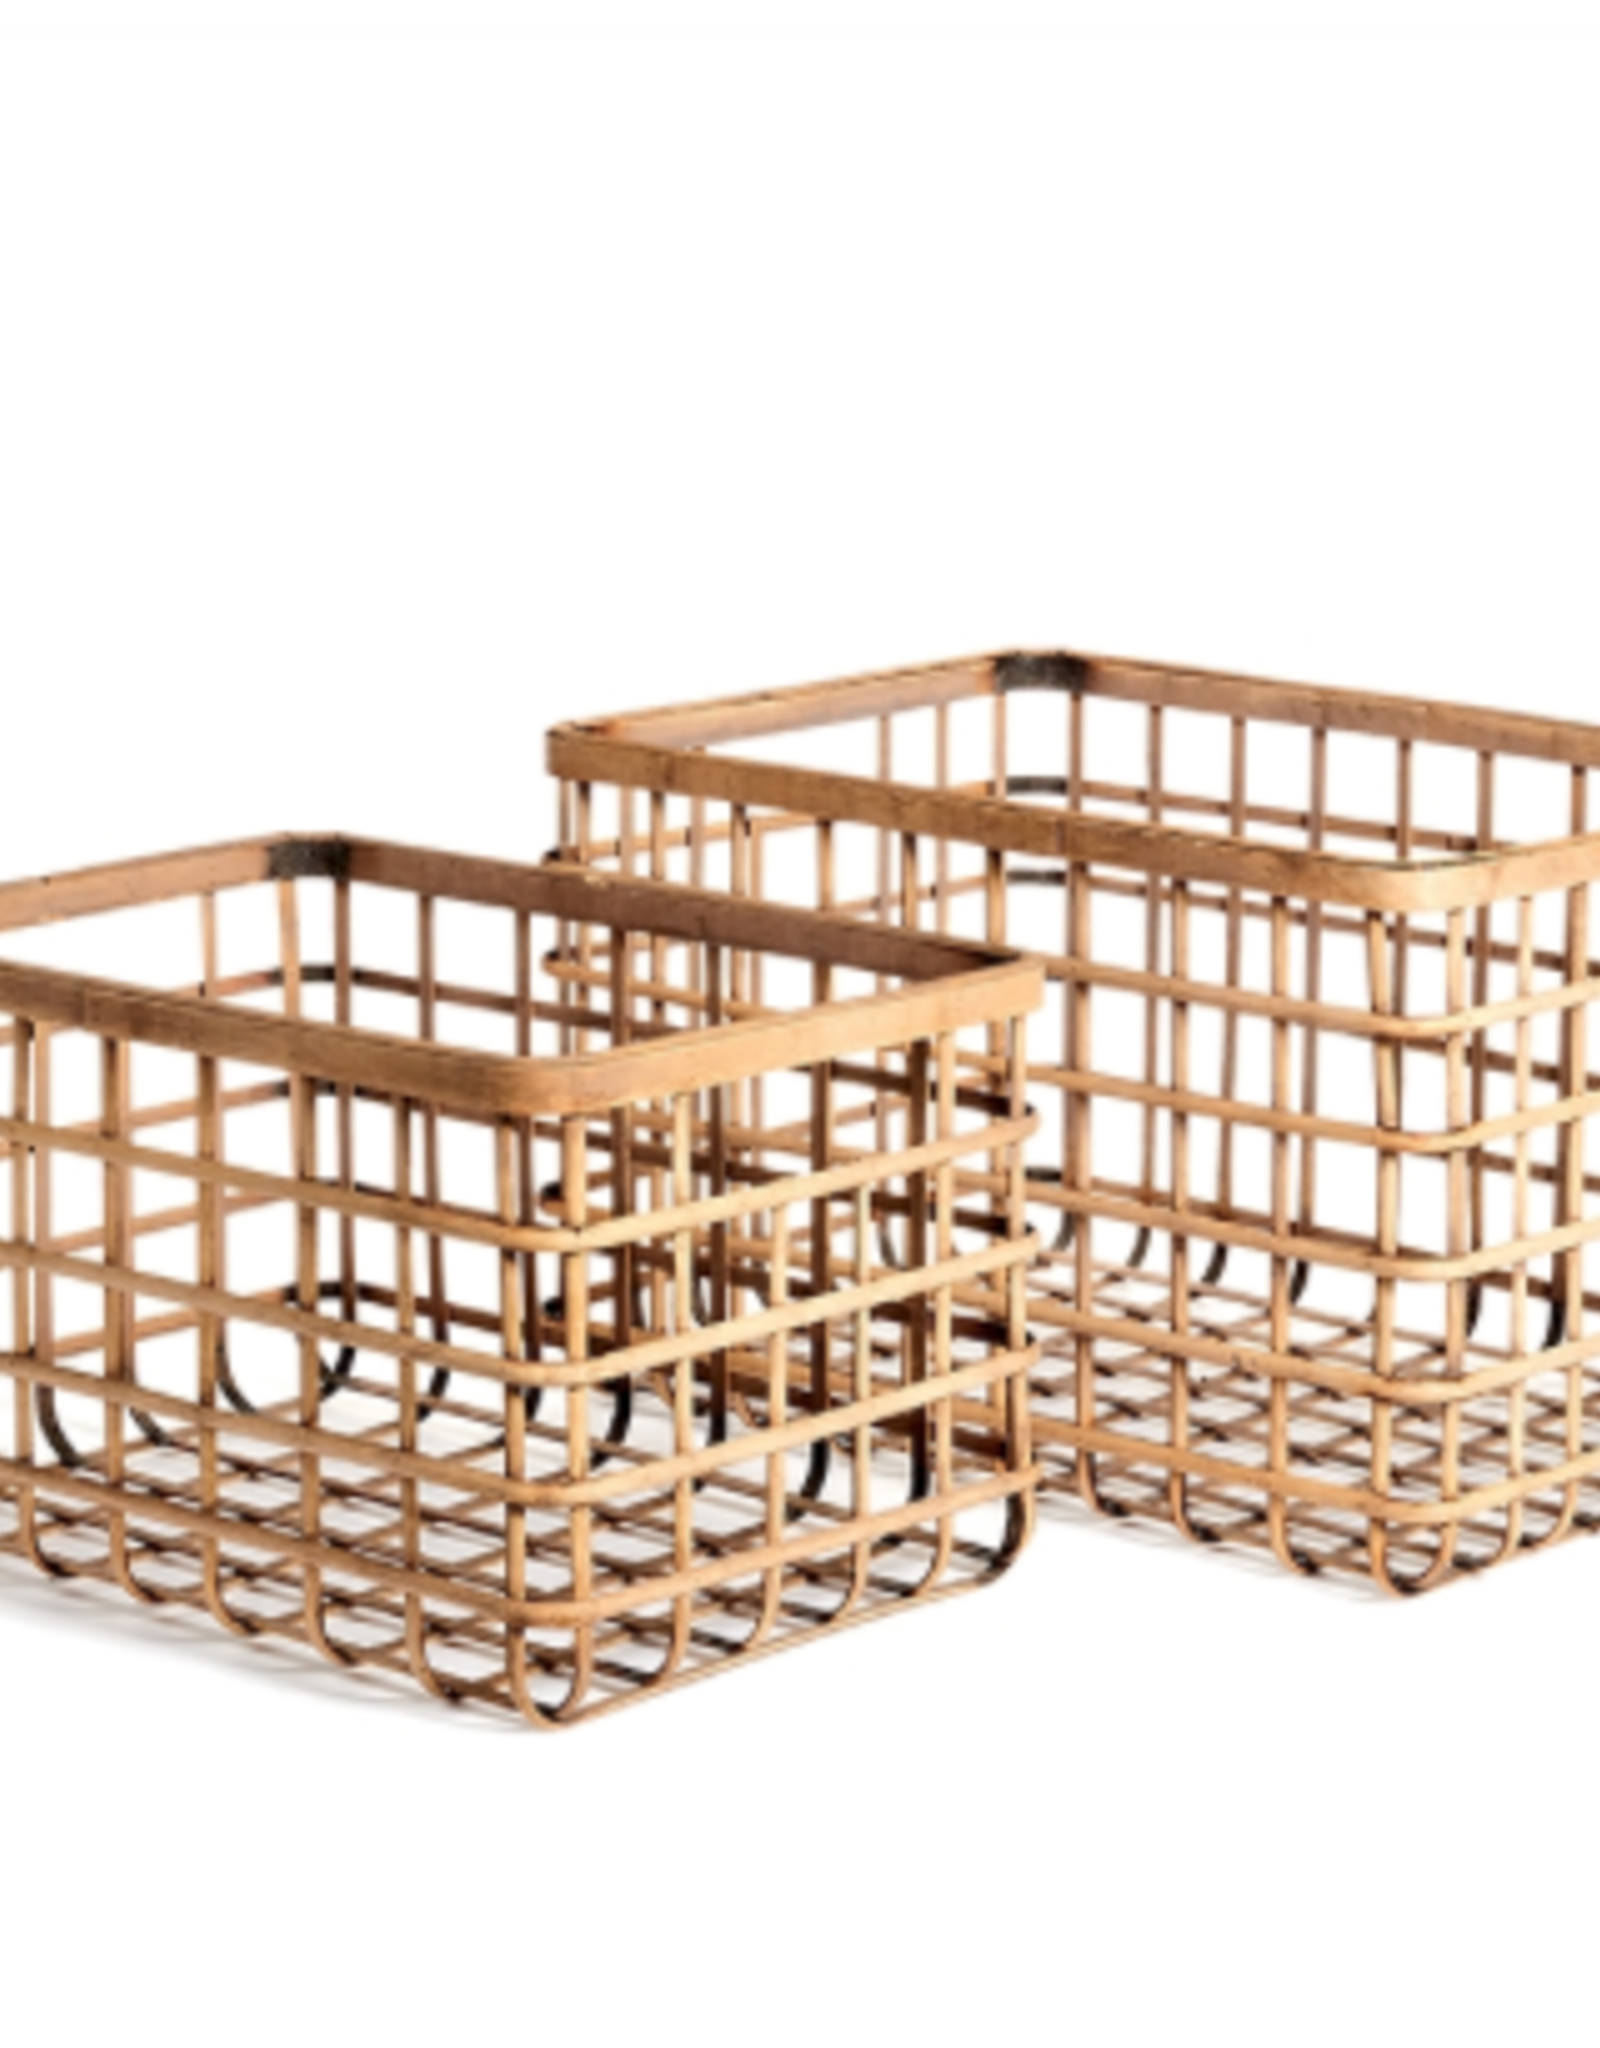 Basket, Natural Bamboo, Rectangula, Lrg